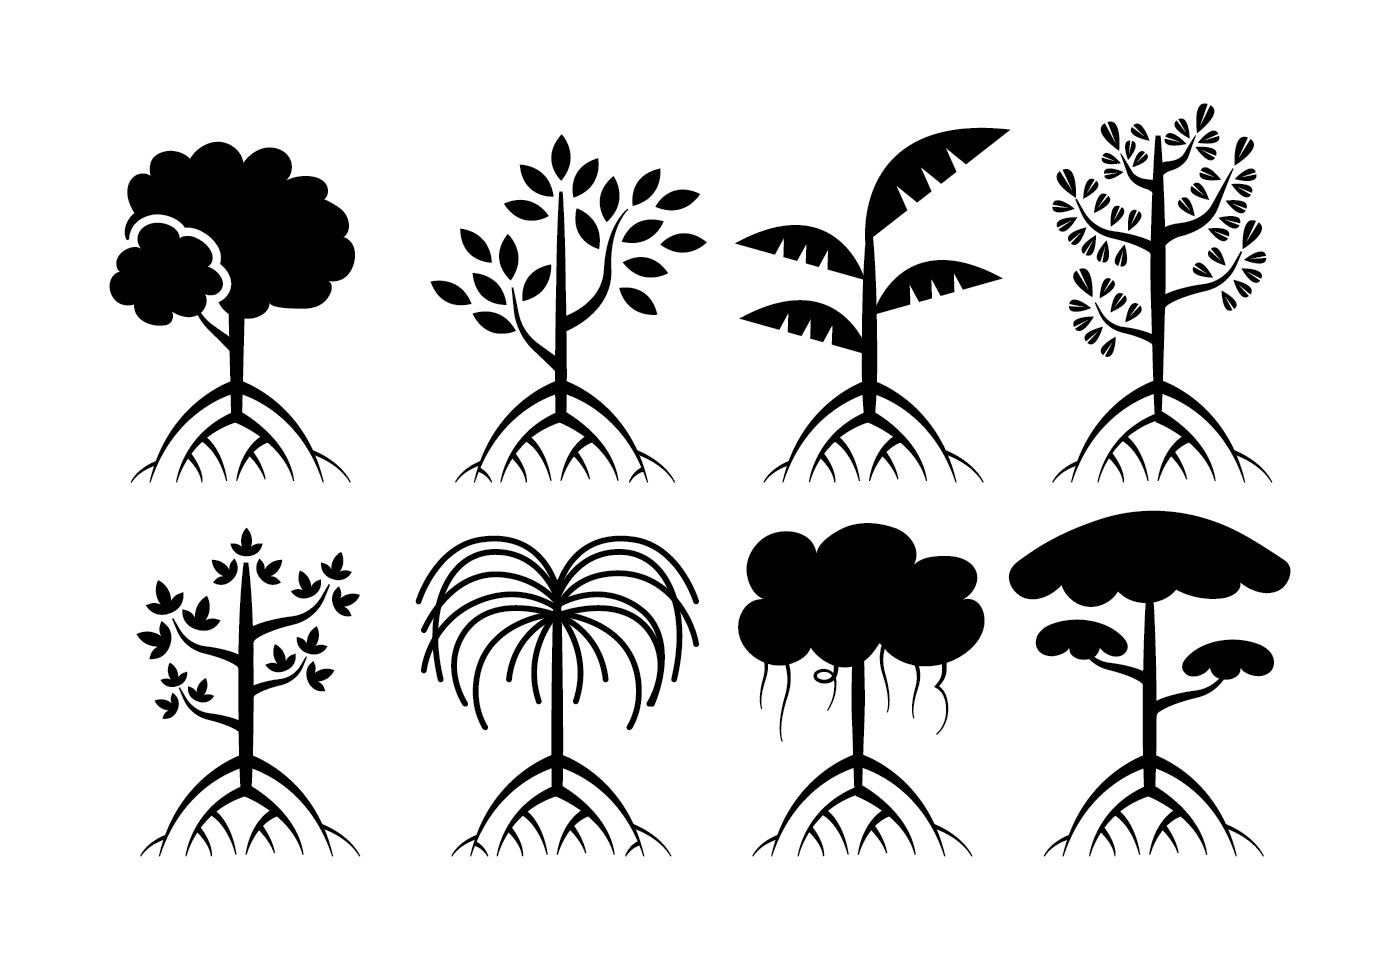 Mangrove trees vector  Download Free Vector Art Stock Graphics  Images